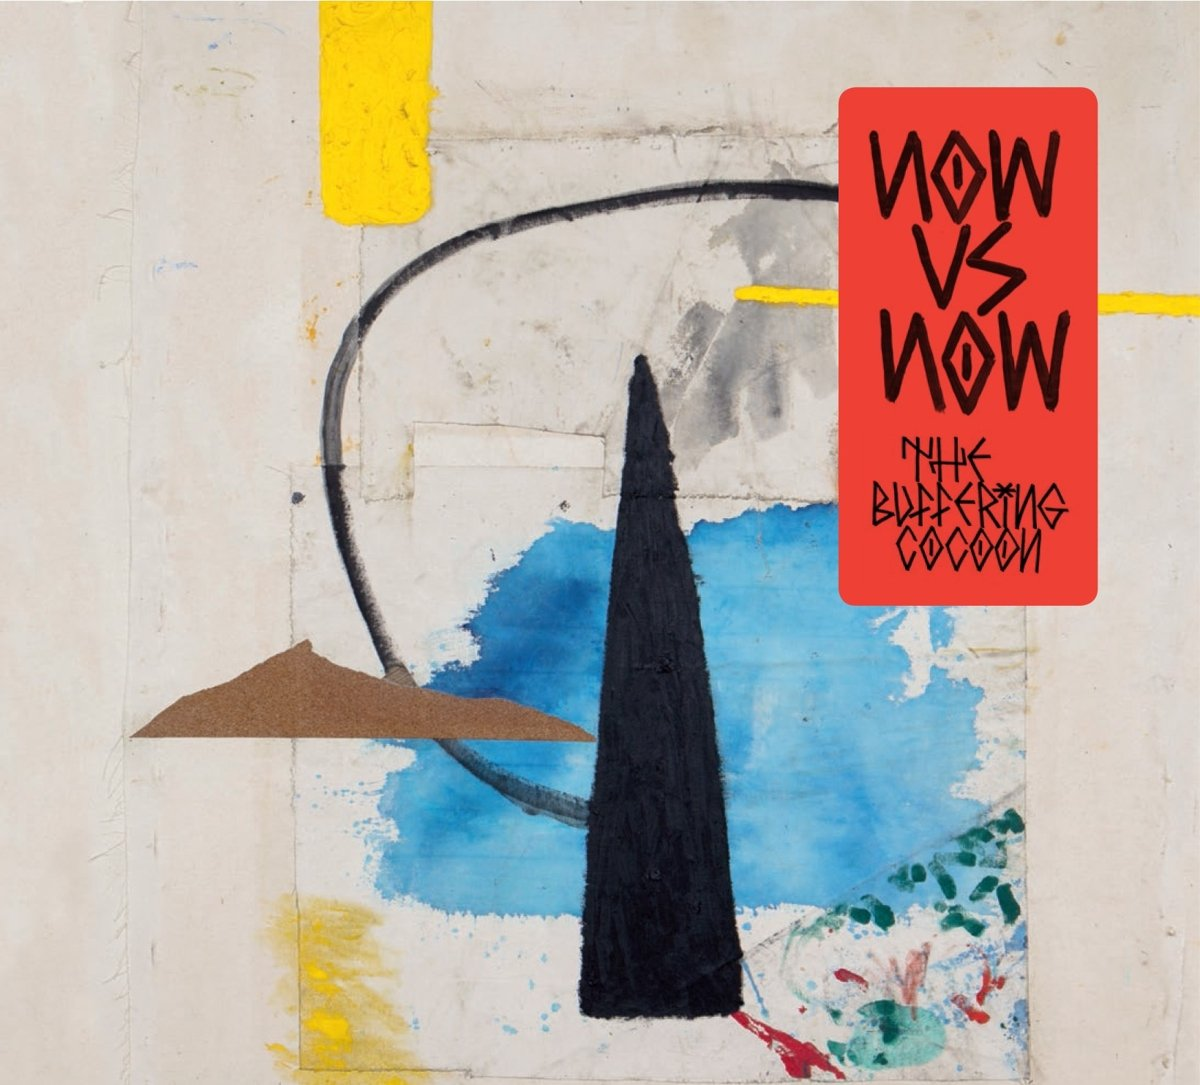 CD : Now vs Now - Buffering Cocoon (United Kingdom - Import)